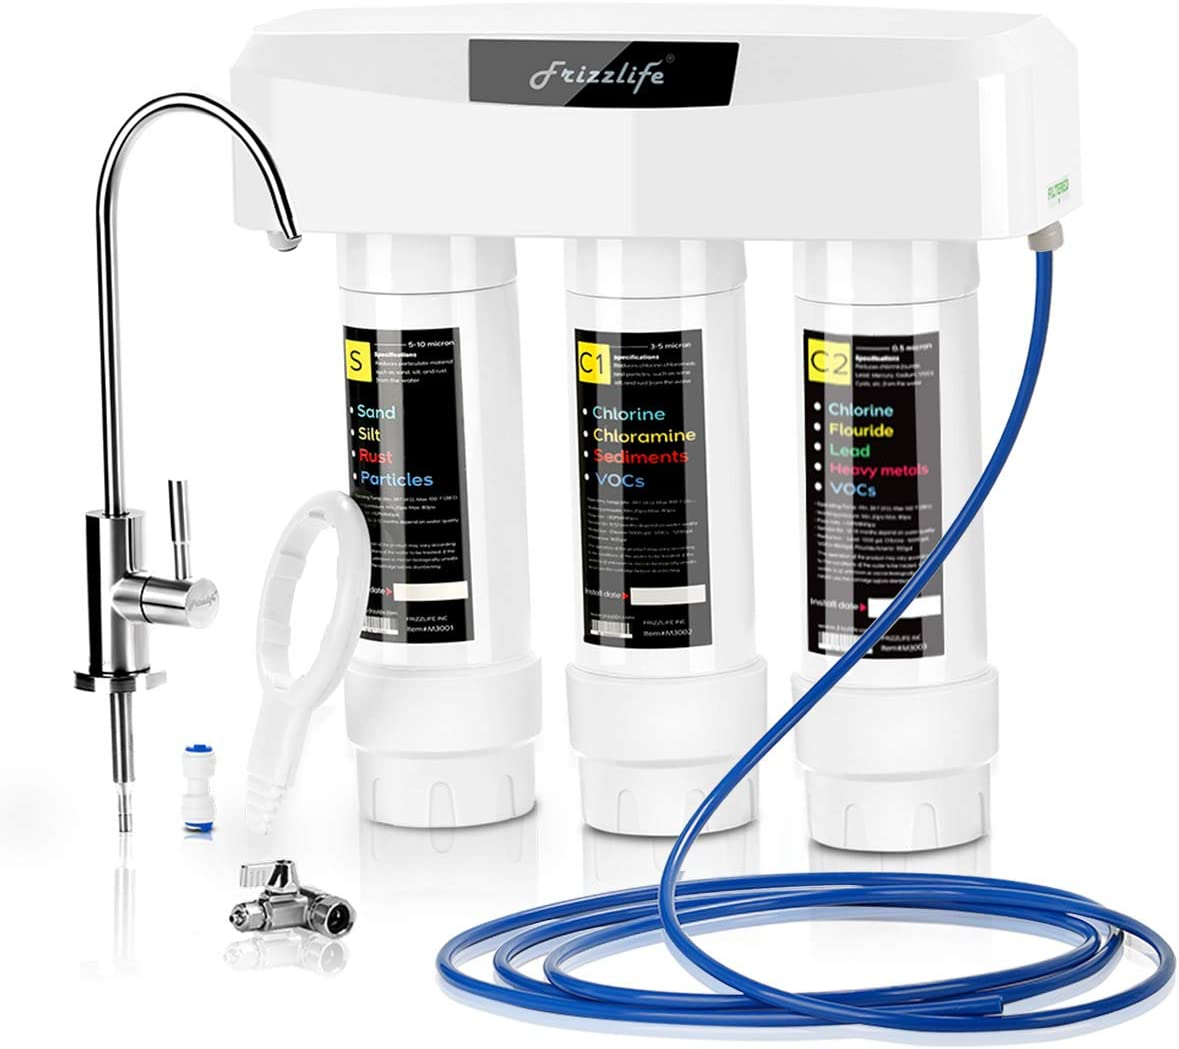 Frizzlife Under Sink Water Filter System With Brushed Nickel Faucet SP99, 3-Stage 0.5 Micron High Precision Removes 99.99% lead, chlorine, chloramine, fluoride - Tankless Quick Change